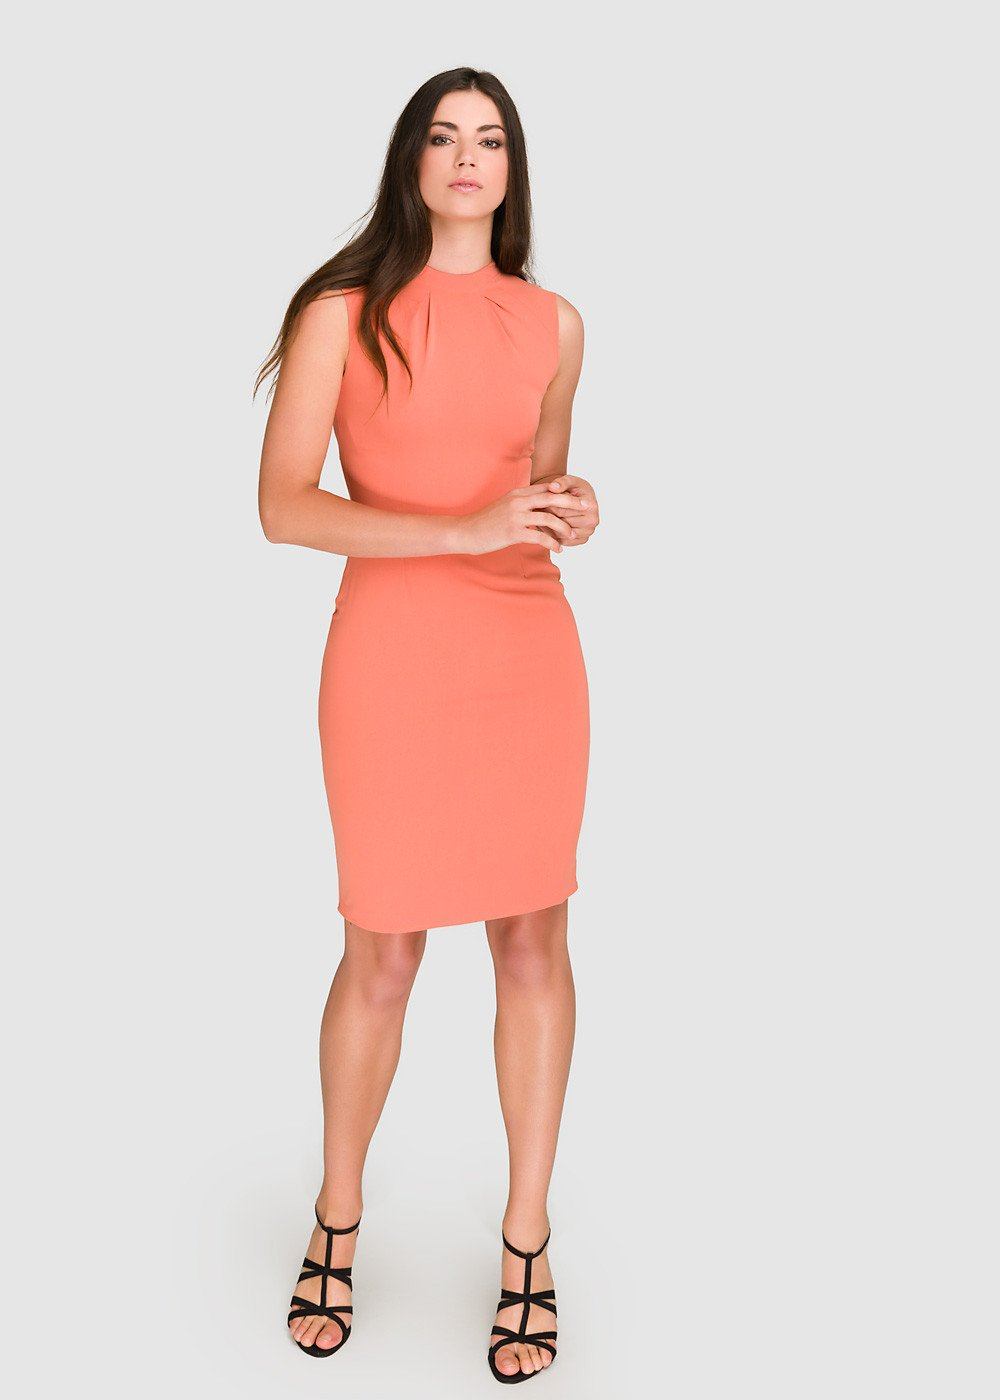 Pleat Detail Bodycon  Work Wear Dress